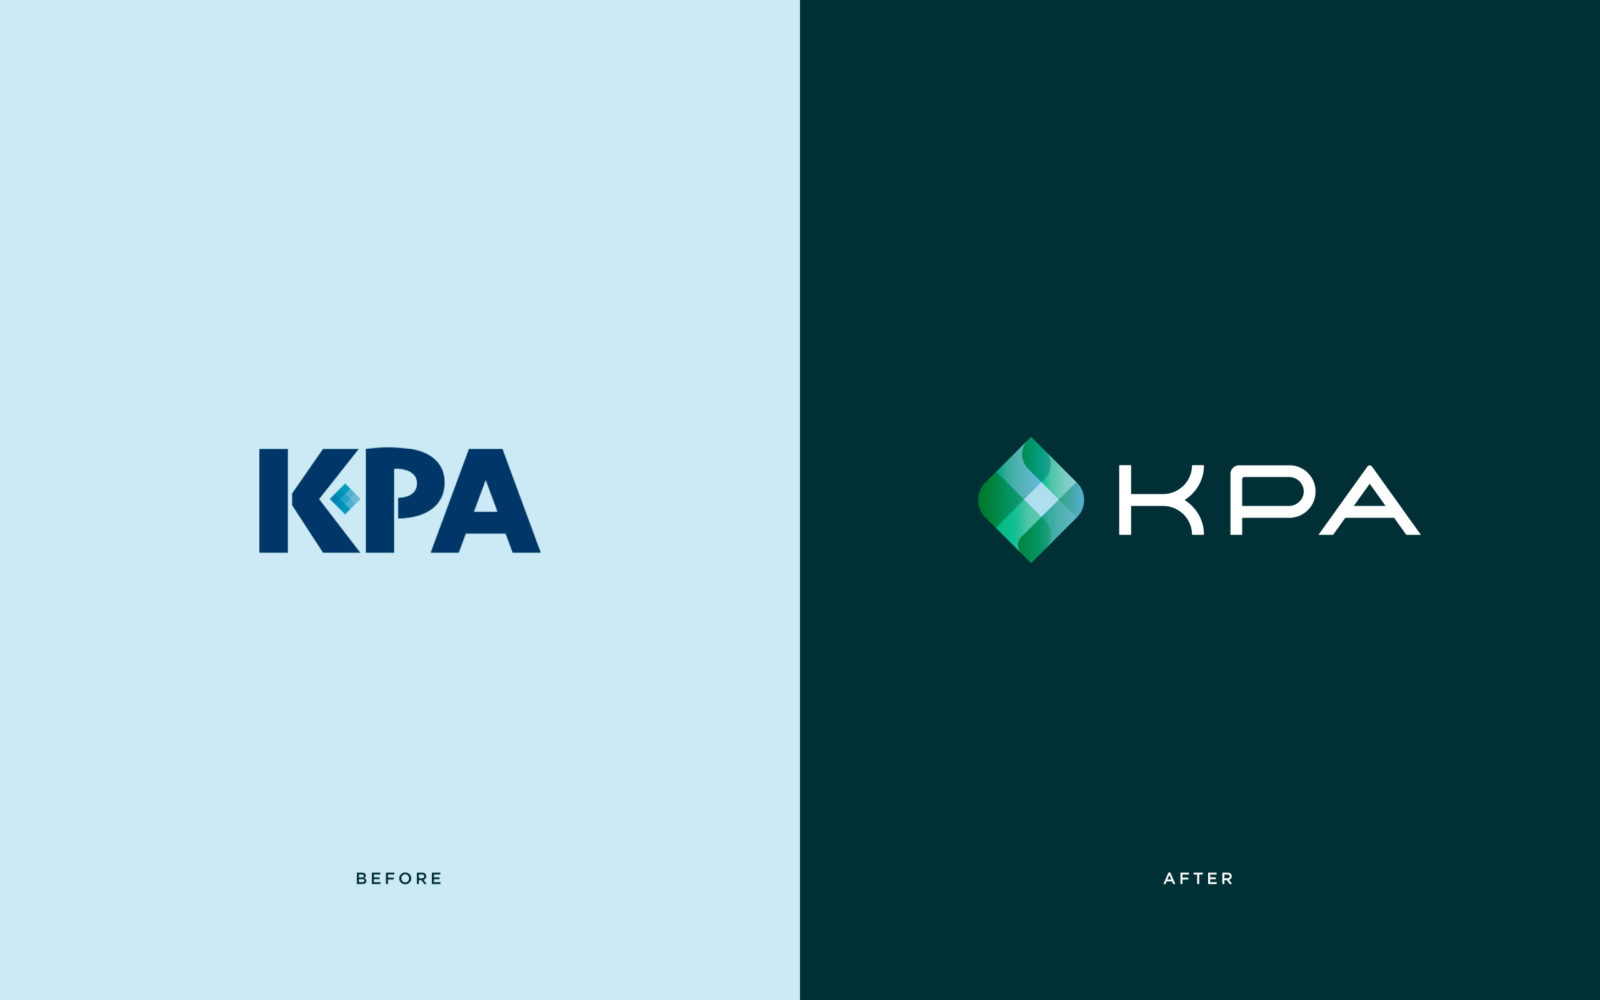 KPA Logo Before and After